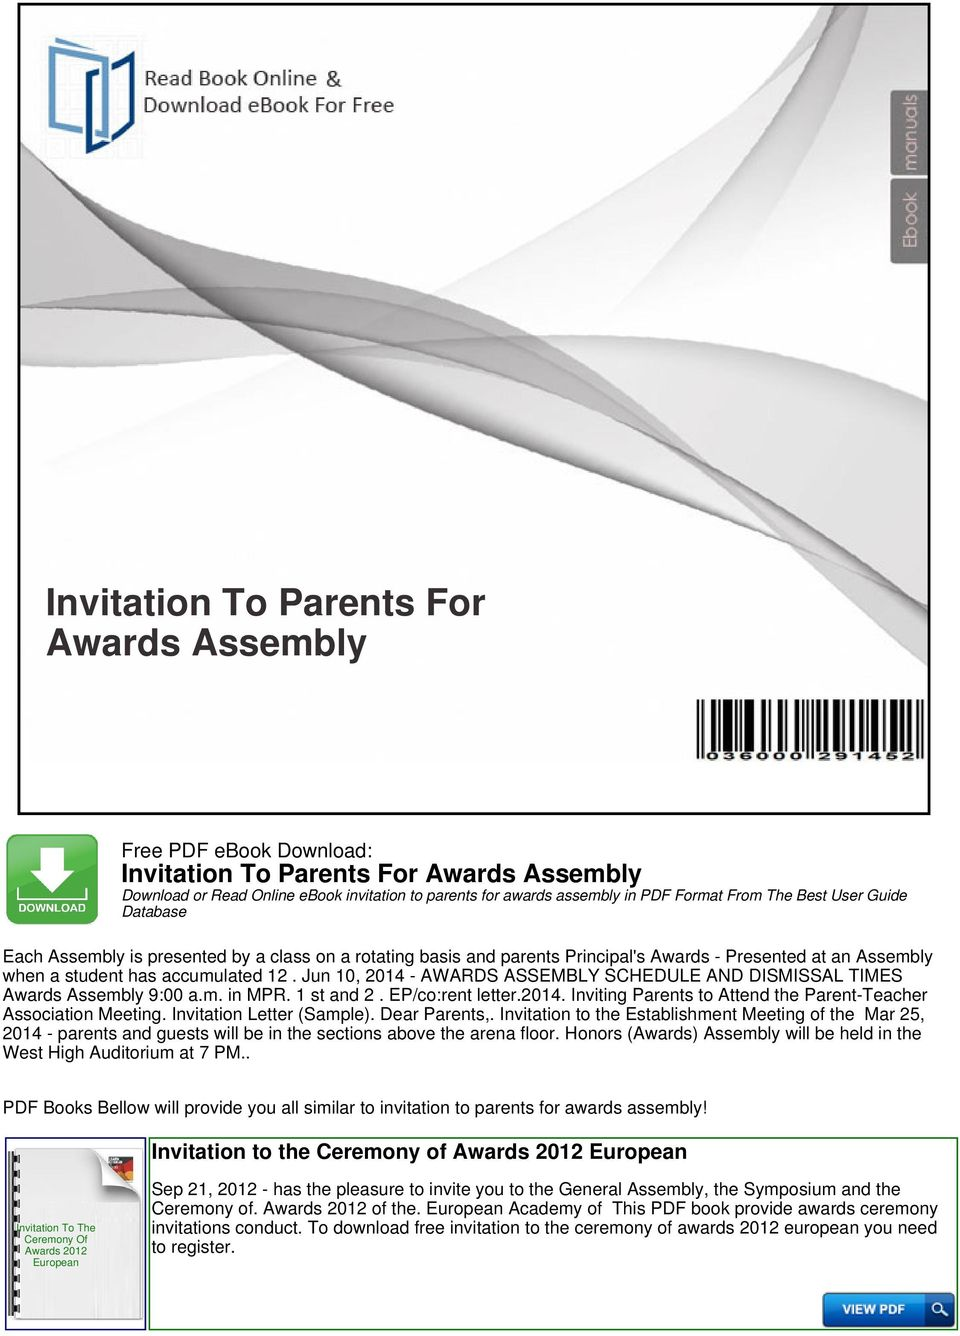 Invitation to parents for awards assembly pdf epcorent letter2014 inviting to thecheapjerseys Image collections